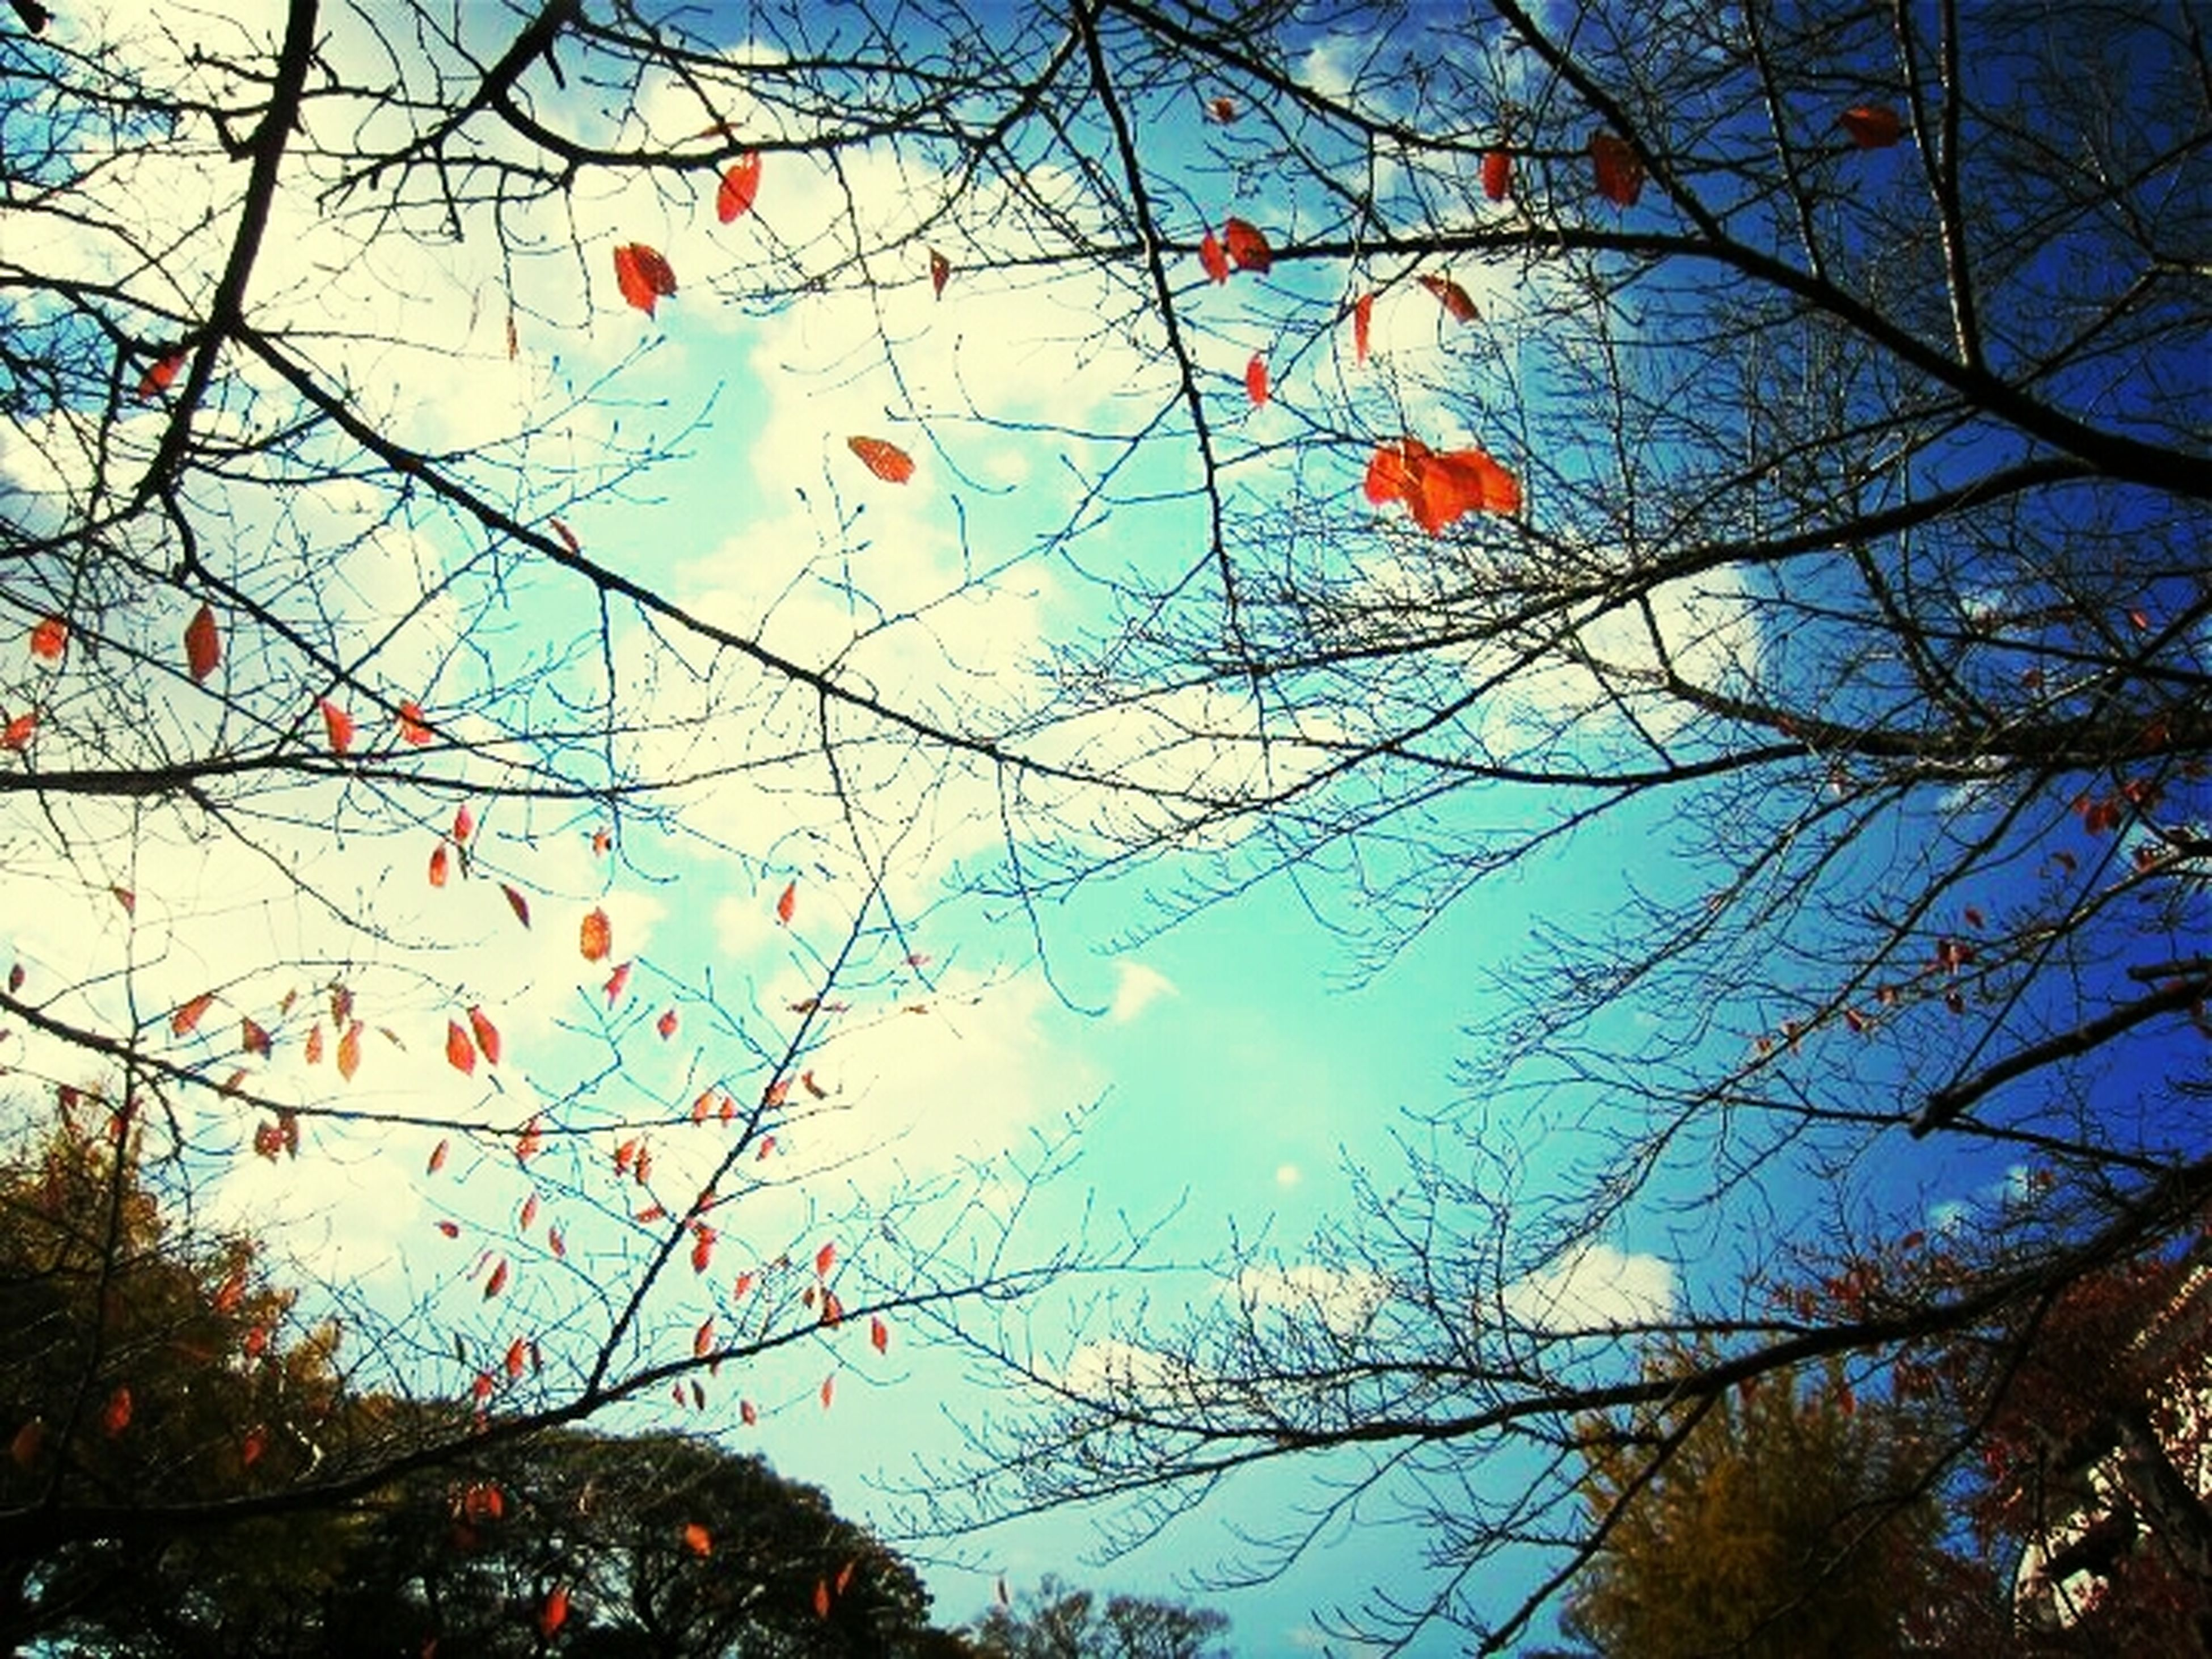 low angle view, tree, branch, sky, bare tree, blue, clear sky, nature, growth, outdoors, day, no people, high section, hanging, autumn, beauty in nature, multi colored, cloud, balloon, treetop